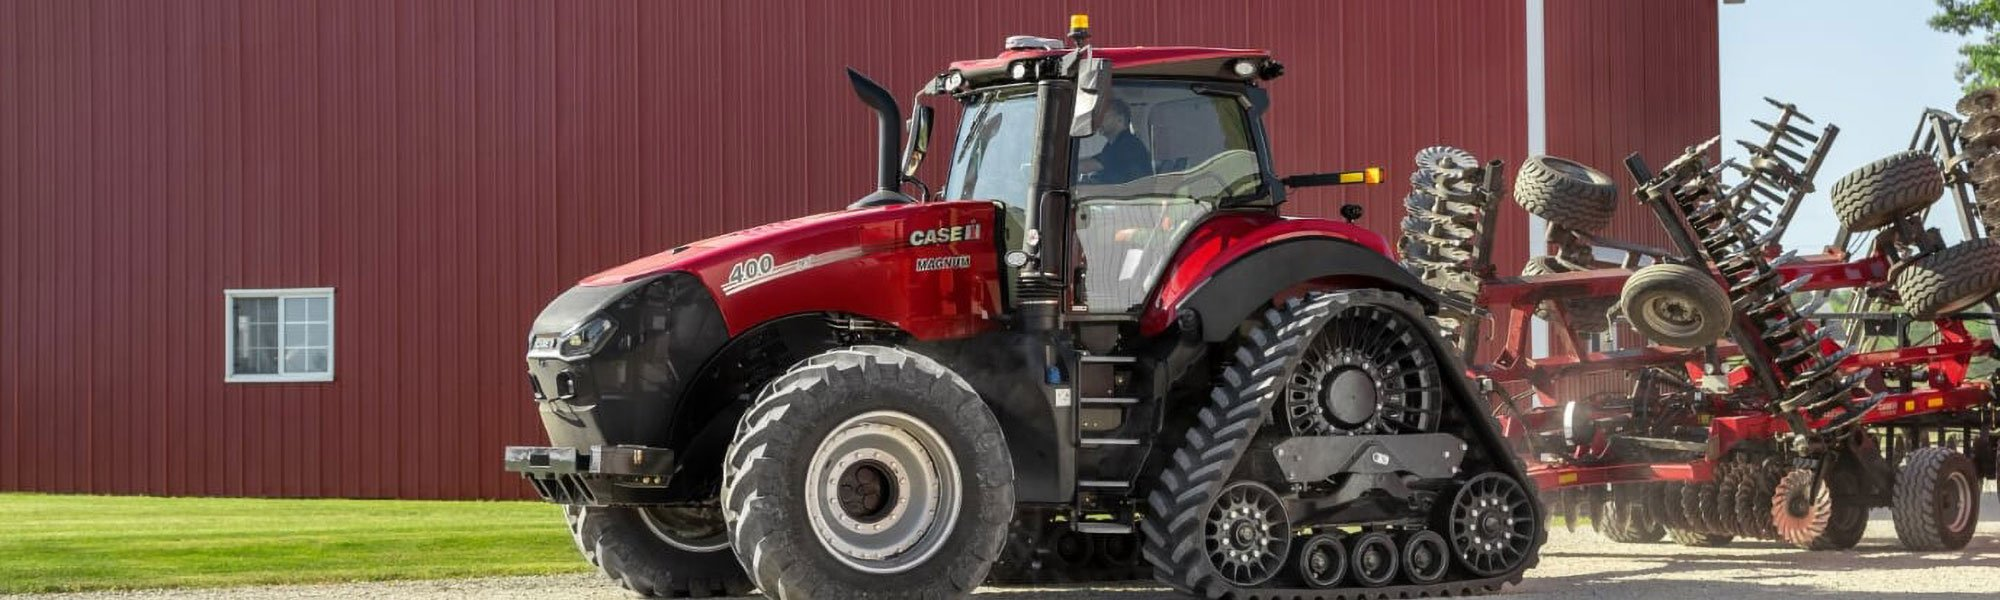 Home Baker Implement With 11 Locations Case Ih Equipment Dealer In Missouri And Arkansas